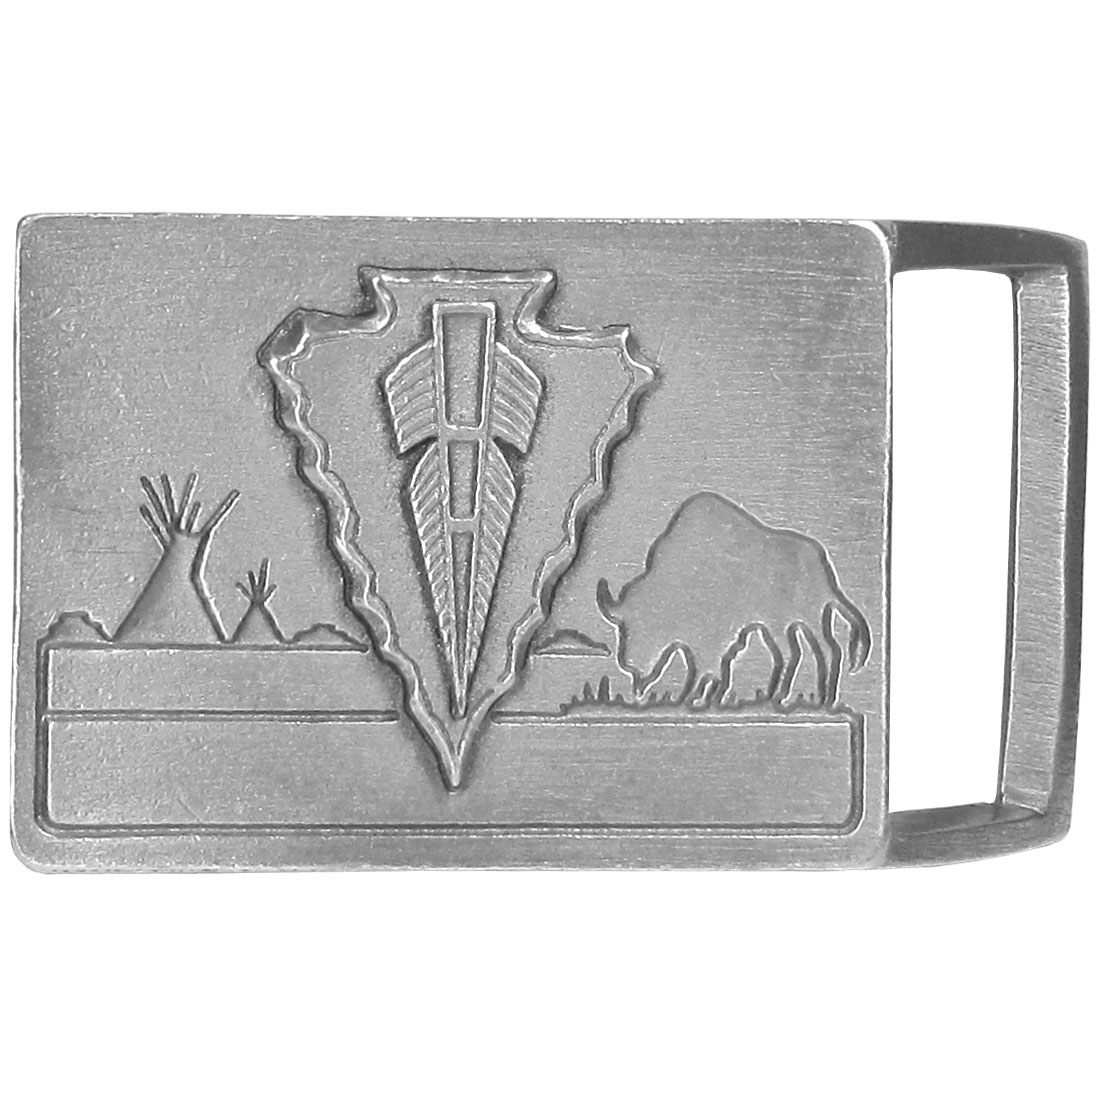 Arrowhead Antiqued Belt Buckle - Finely sculpted and intricately designed belt buckle. Our unique designs often become collector's items.